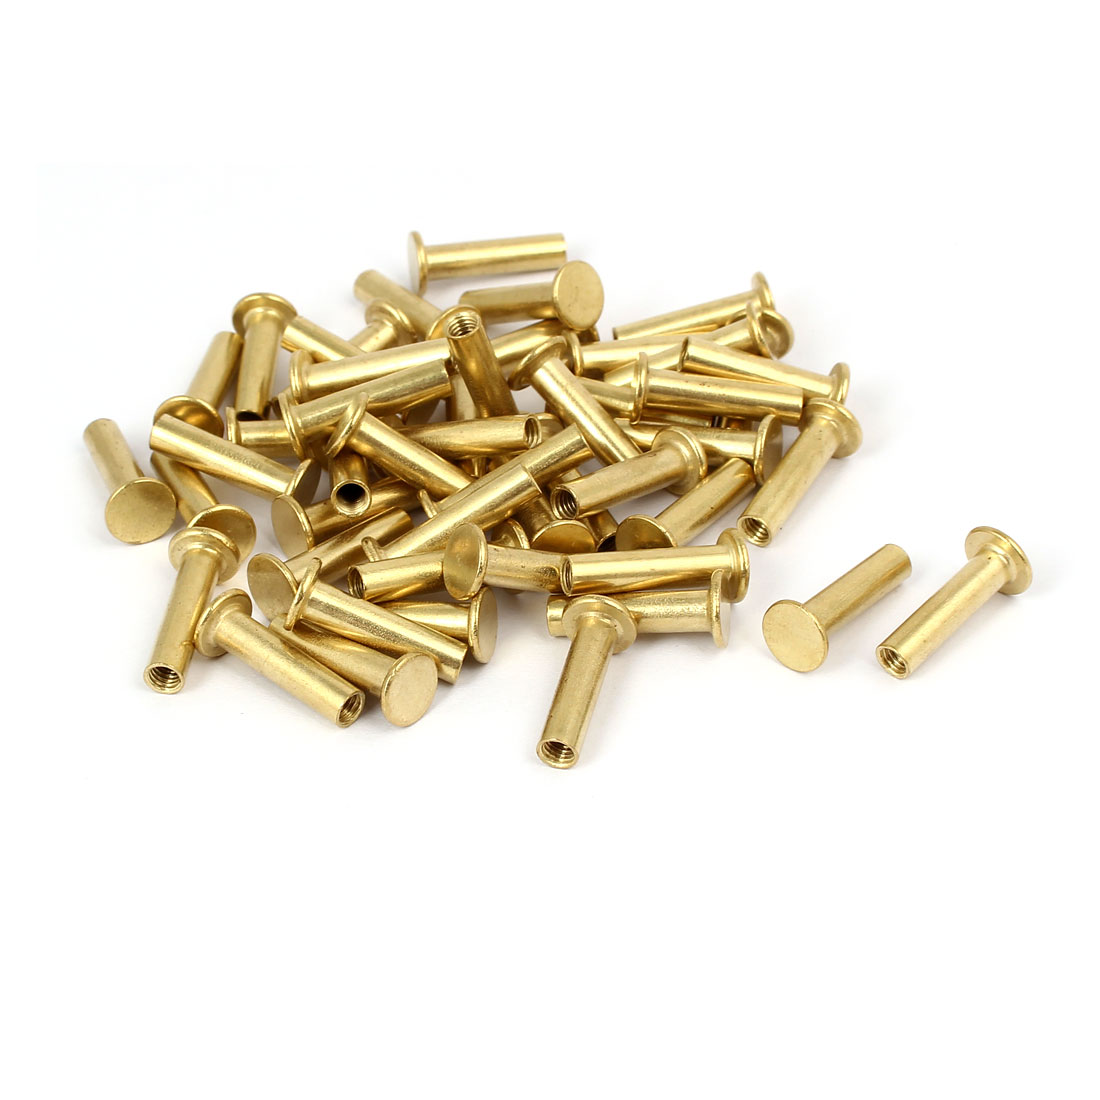 Photo Album Metal Brass Plated Binding Screw Post Barrel Nut 5mmx20mm 50pcs